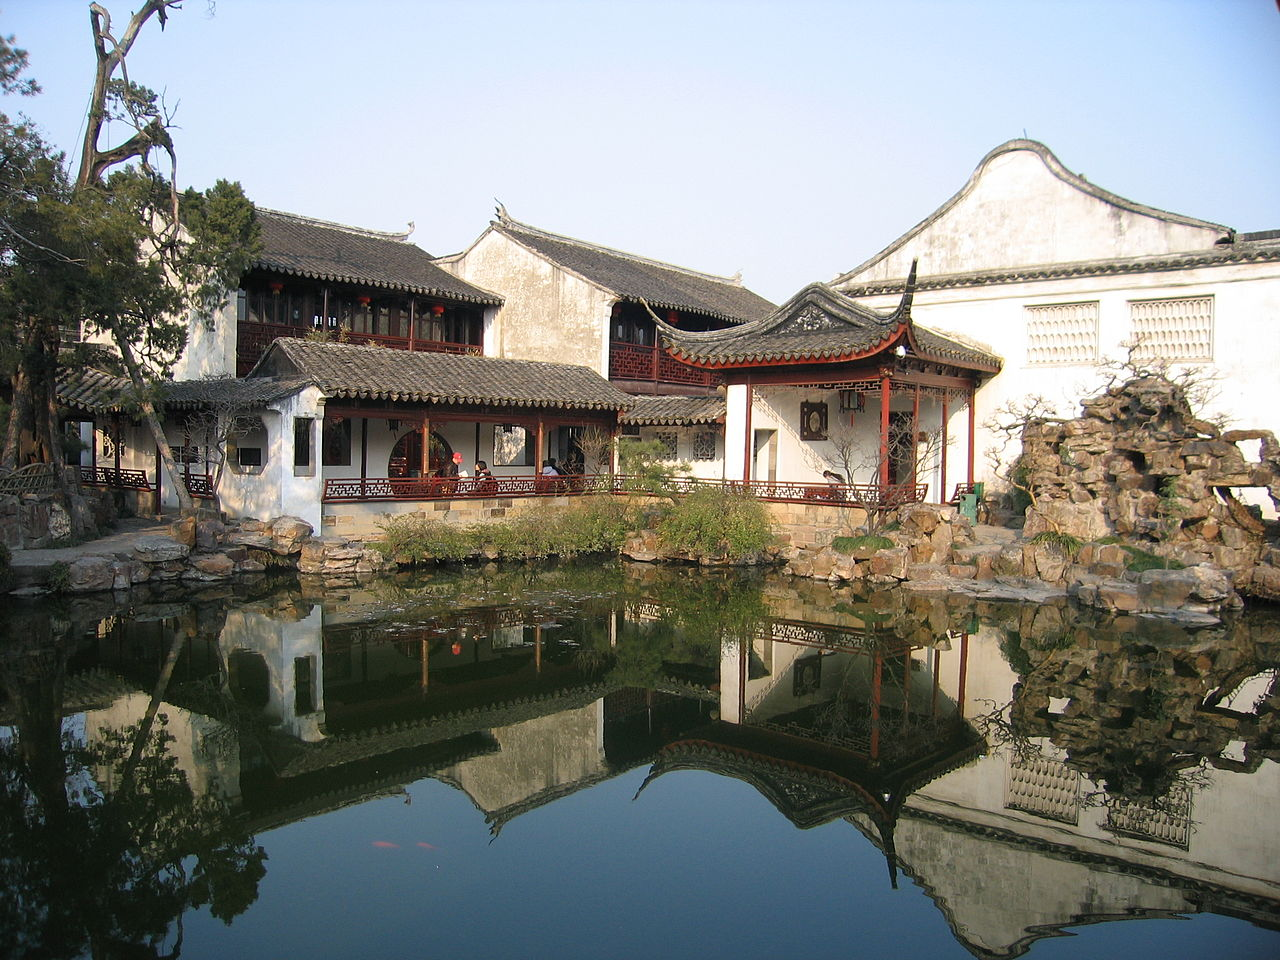 Reflection of The Master of Nets Garden — in Suzhou, China